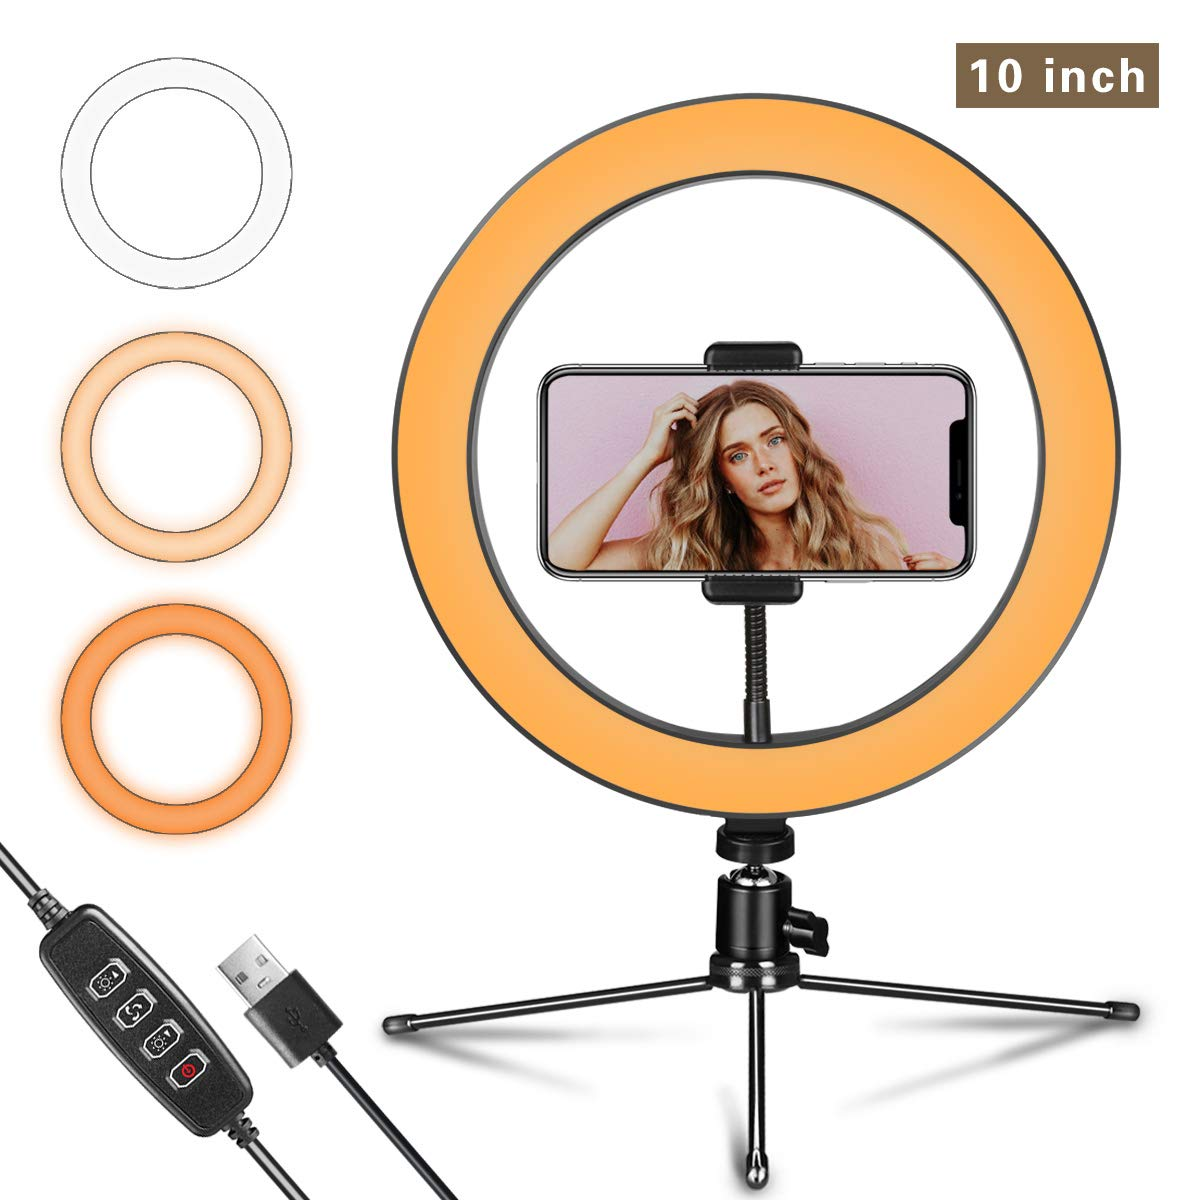 """Ring Light 10"""" with Tripod Stand and Phone Holder for YouTube Video & Streaming, Desk Makeup LED Ring Light Dimmable for Photography Lighting, Selfie with 3 Light Modes & 10 Brightness Level(10"""")"""